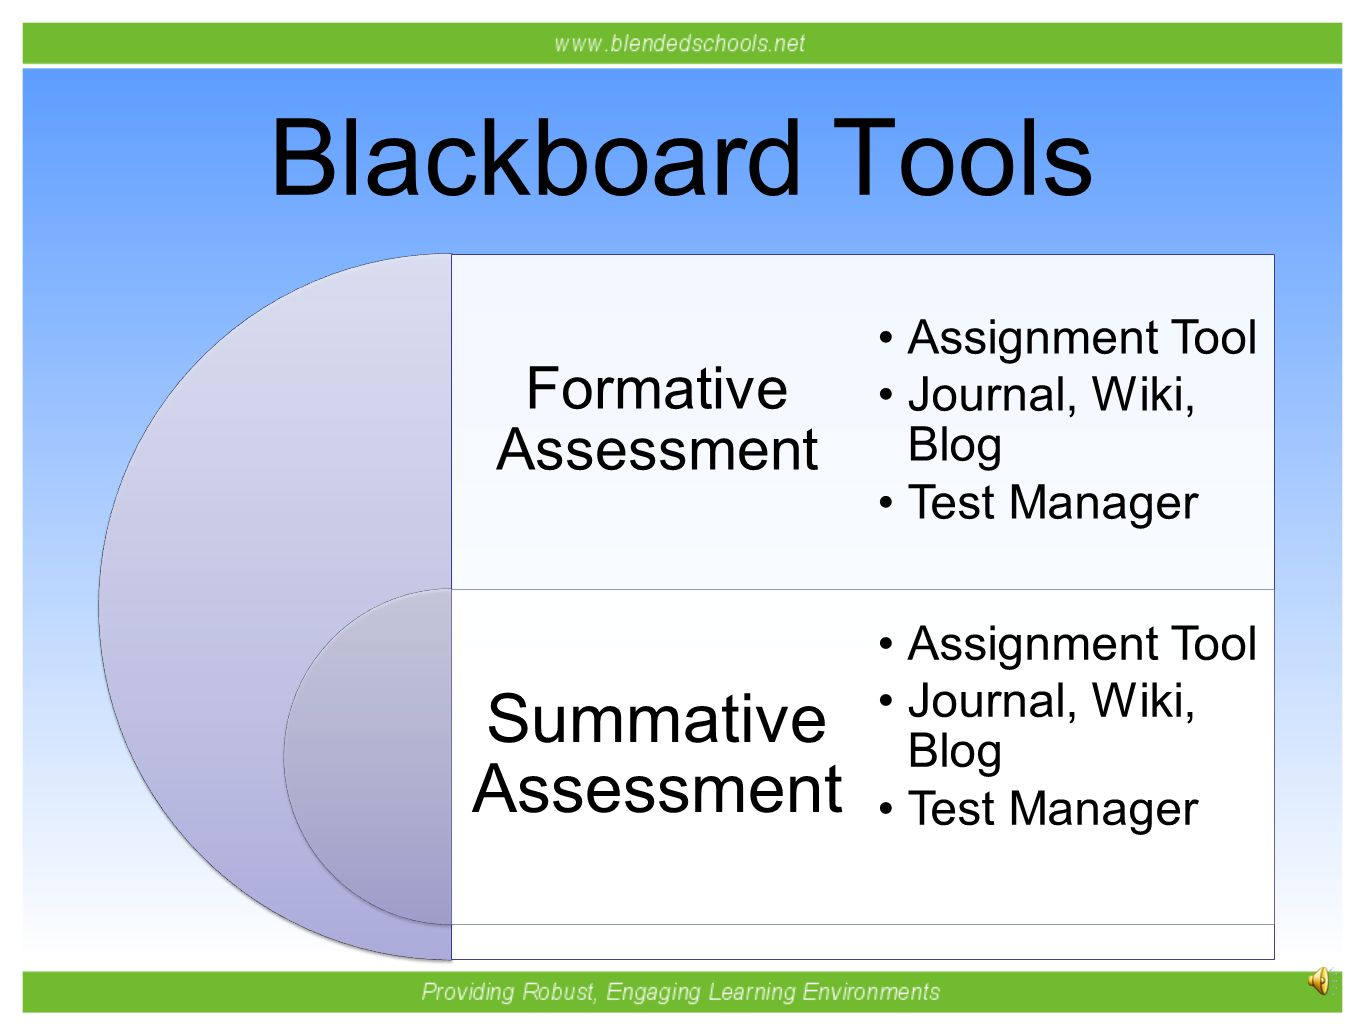 formative assignment Using formative assessment and progress monitoring, one school updates and adjust how and what they teach students in regards to math watch how they implement a formative assessment and monitoring program to get tips on using it in your school.